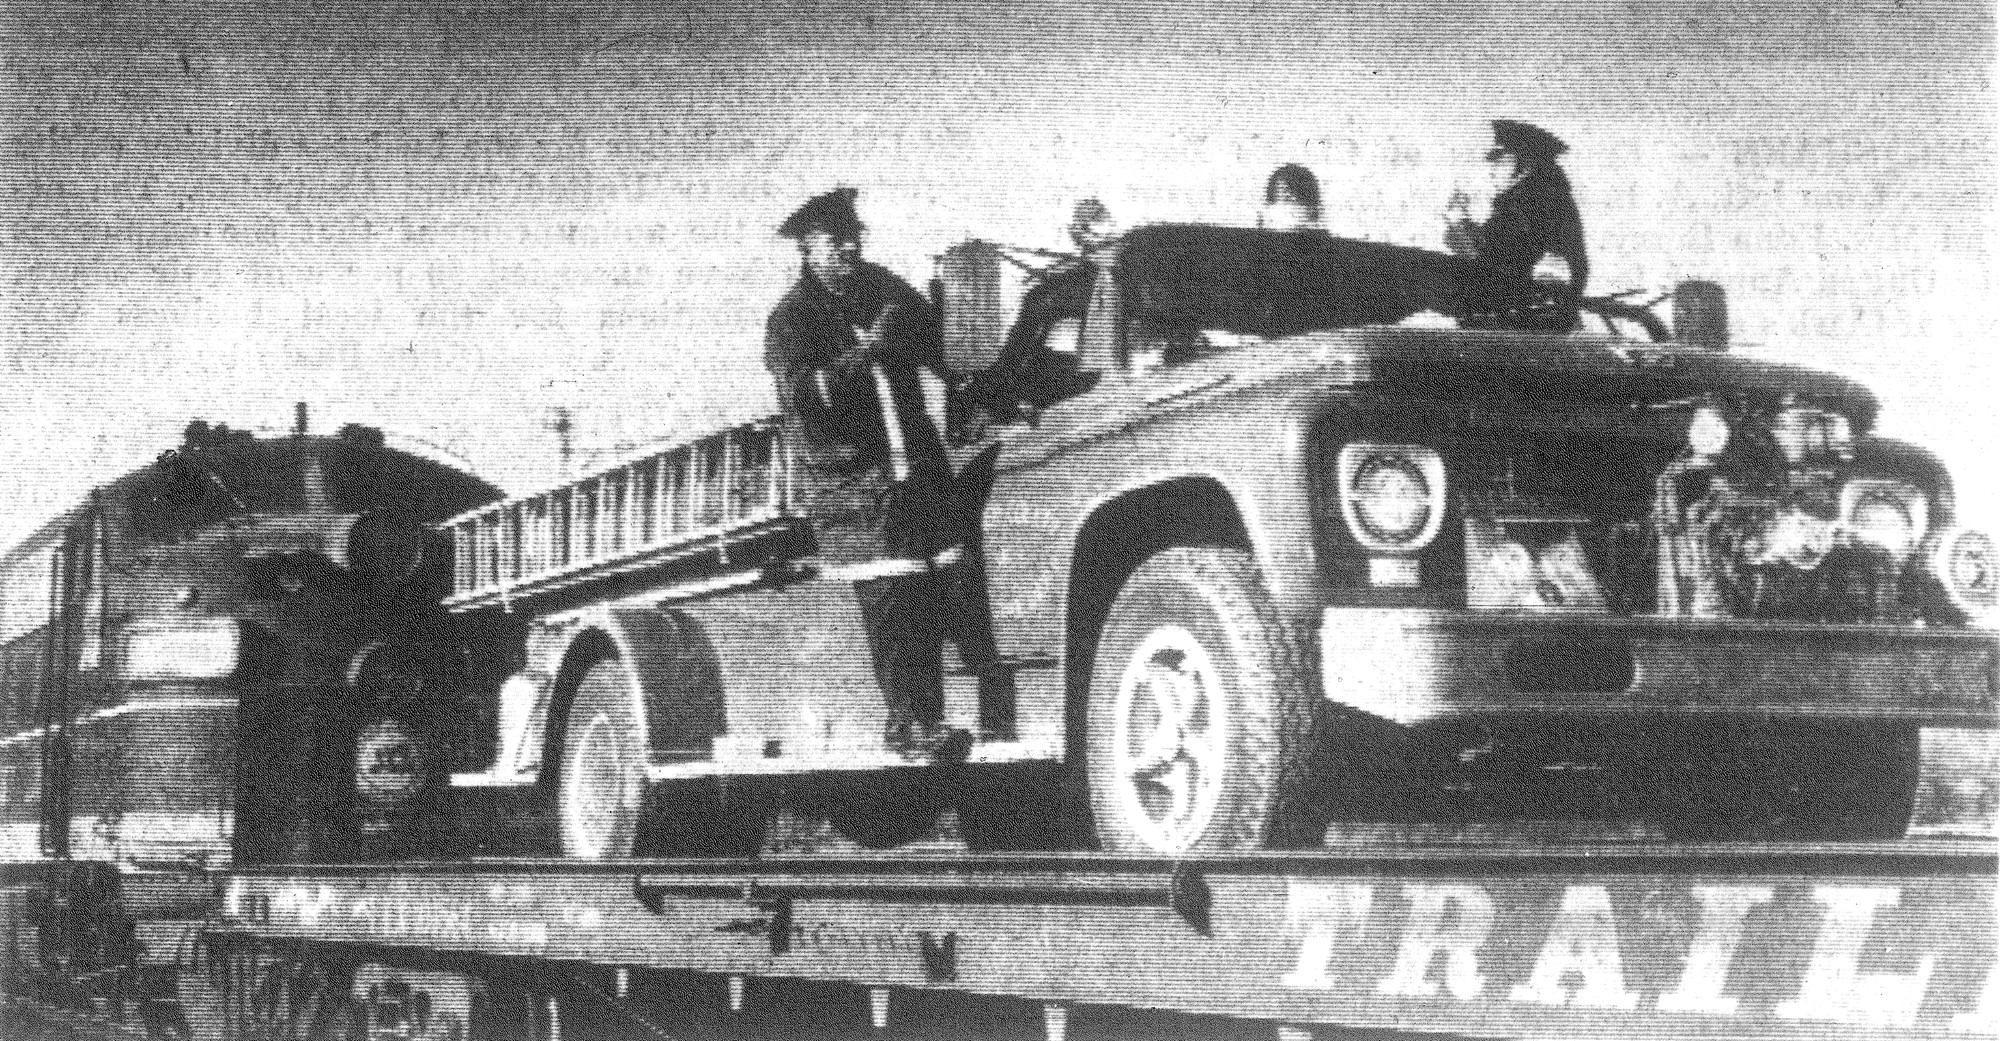 1968 - Sumter Fire Department firemen K. O. Mims, on left side of truck, and T. A. Green were checking radio communications as they prepared to depart early in a unique manner - piggyback style on a flat car - to help battle the Seaboard Coast Line Railroad trestle fire in the Rimini area.